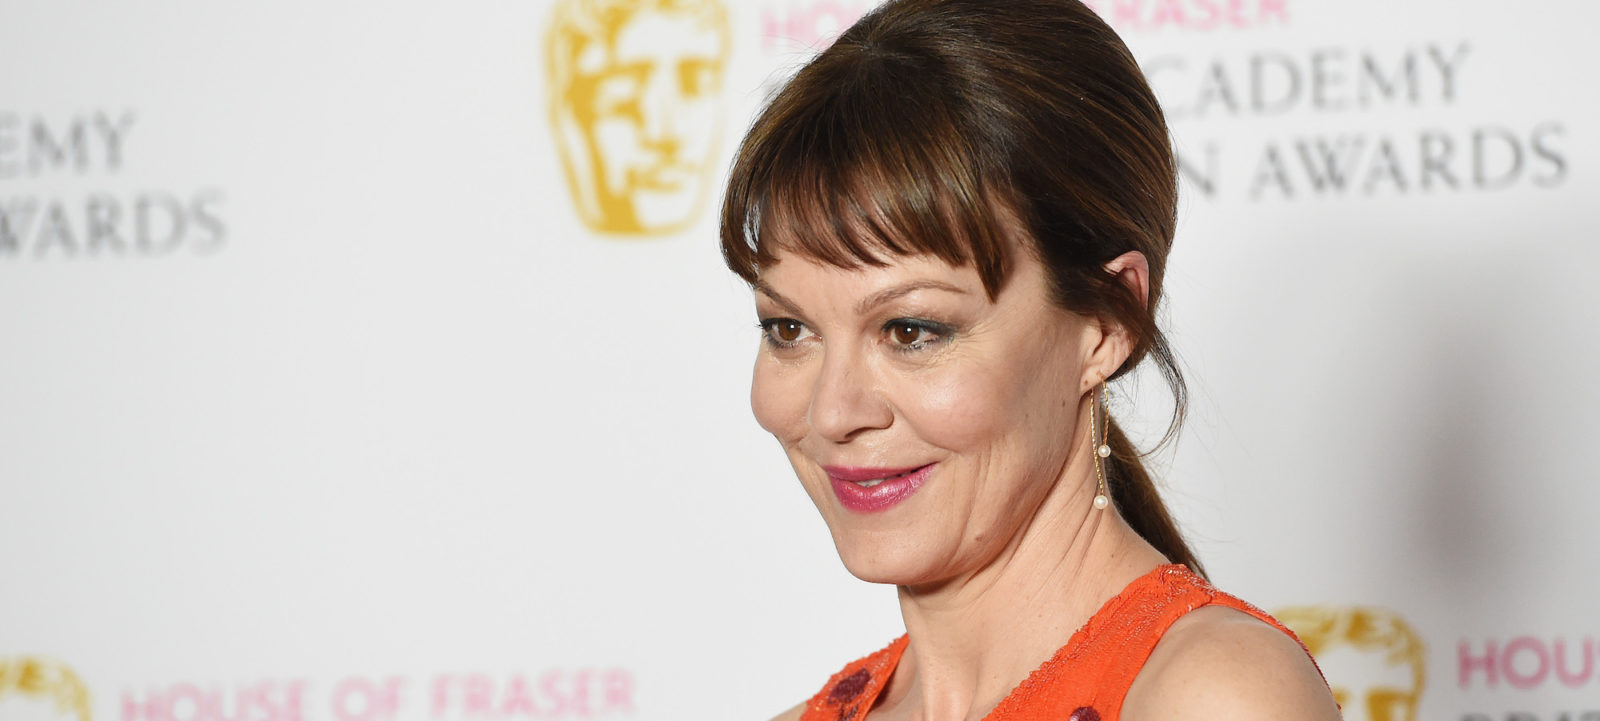 Helen McCrory poses in the Winners room at the House Of Fraser British Academy Television Awards 2016  at the Royal Festival Hall on May 8, 2016 in London, England.